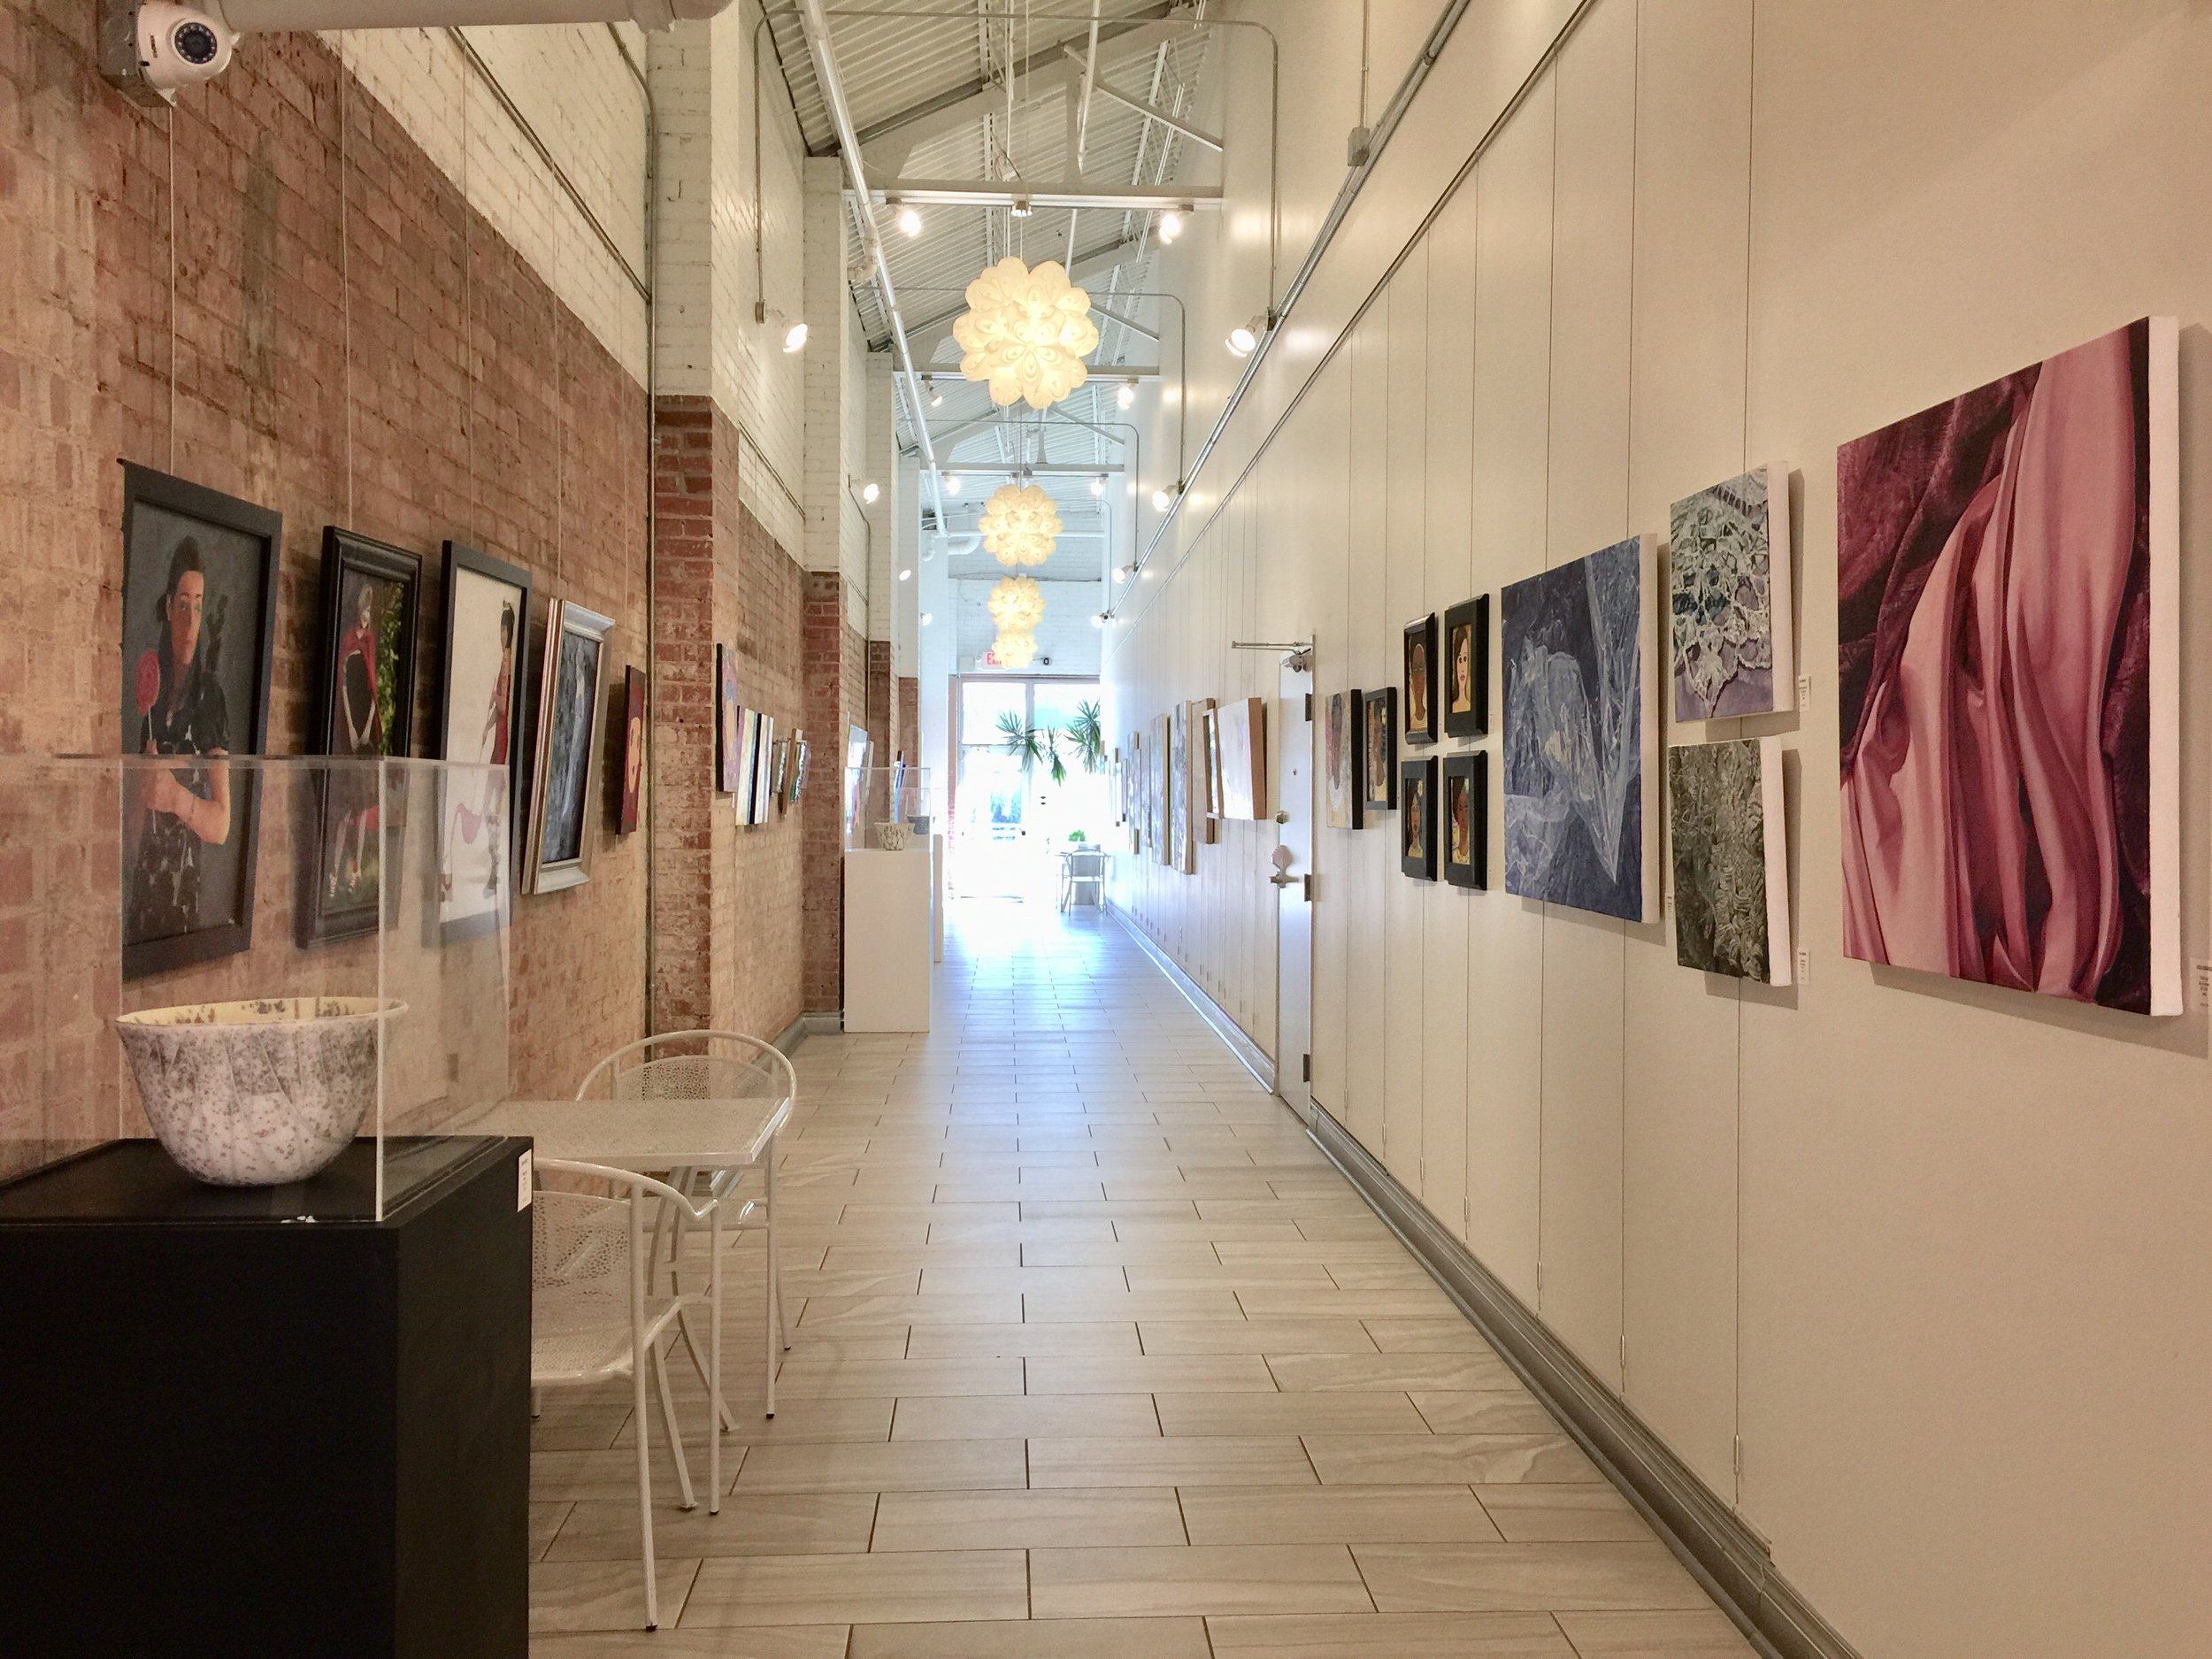 Installation view facing South, featuring Ryan Pack on the left and Erica Bonavida on the right, and Debra Ashley's glass work